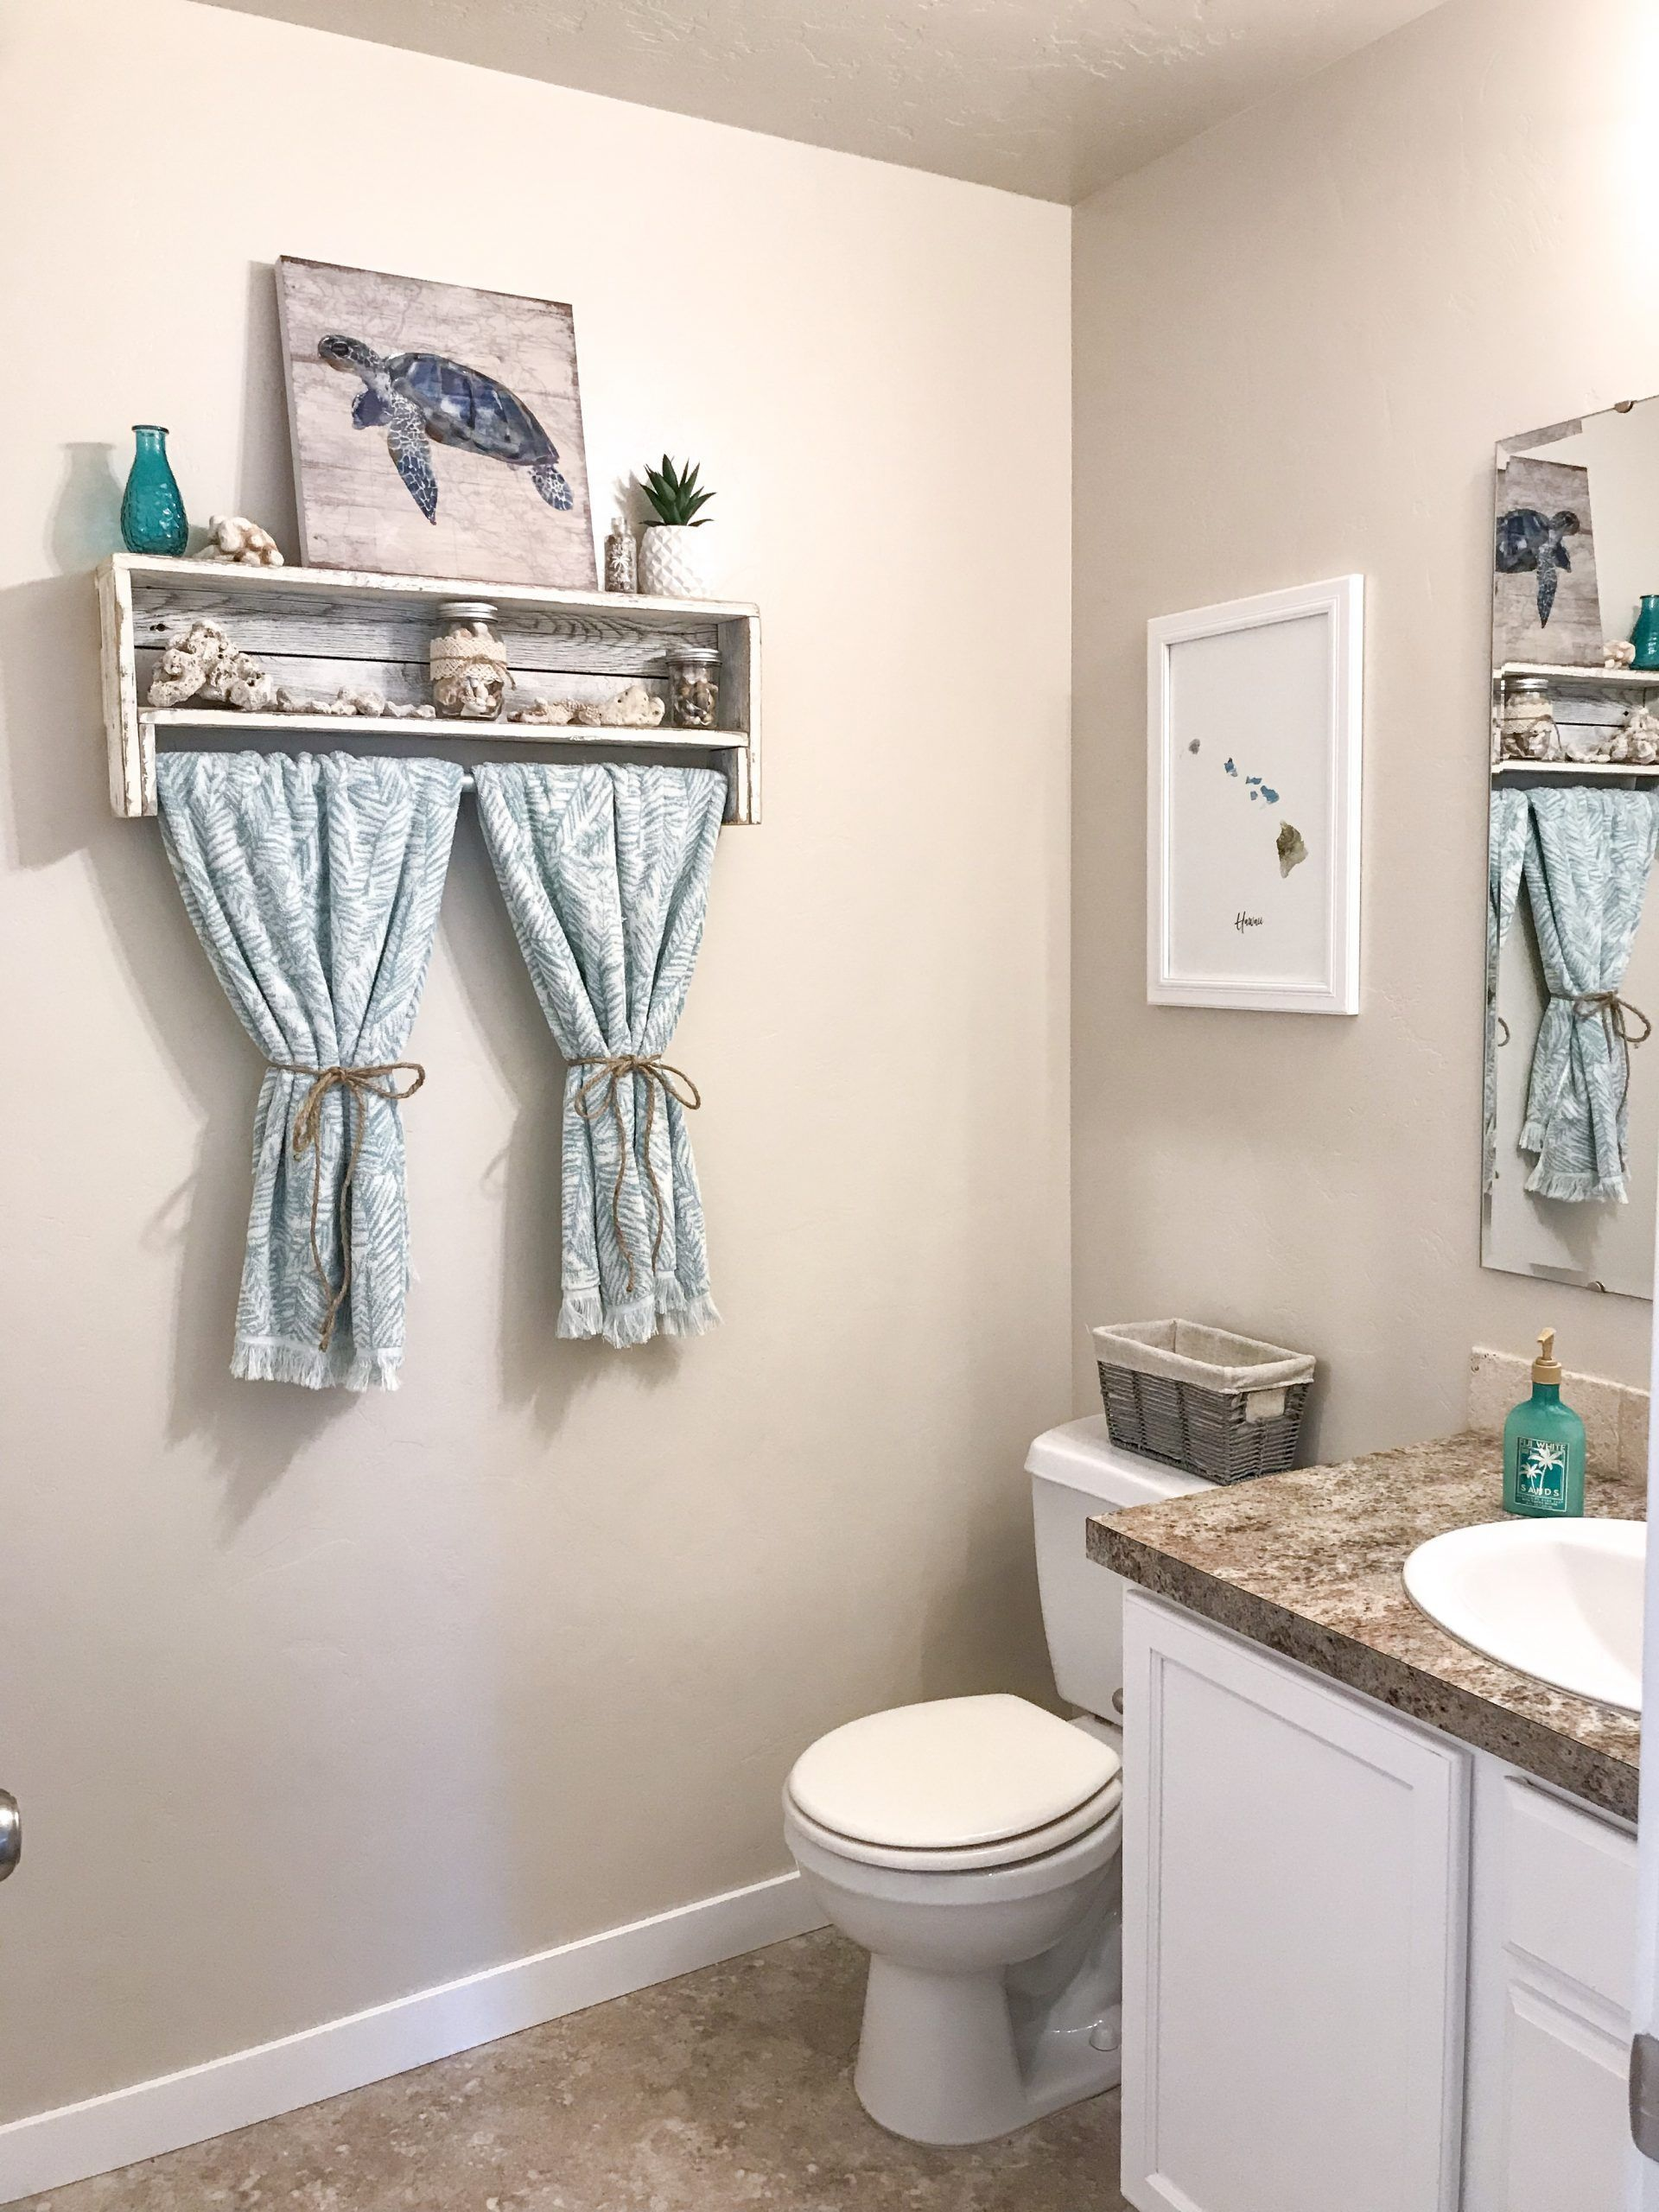 Beach Themed Bathroom Decorating Ideas In 2020 Beach Theme Bathroom Decor Beach Theme Bathroom Beach Bathroom Decor